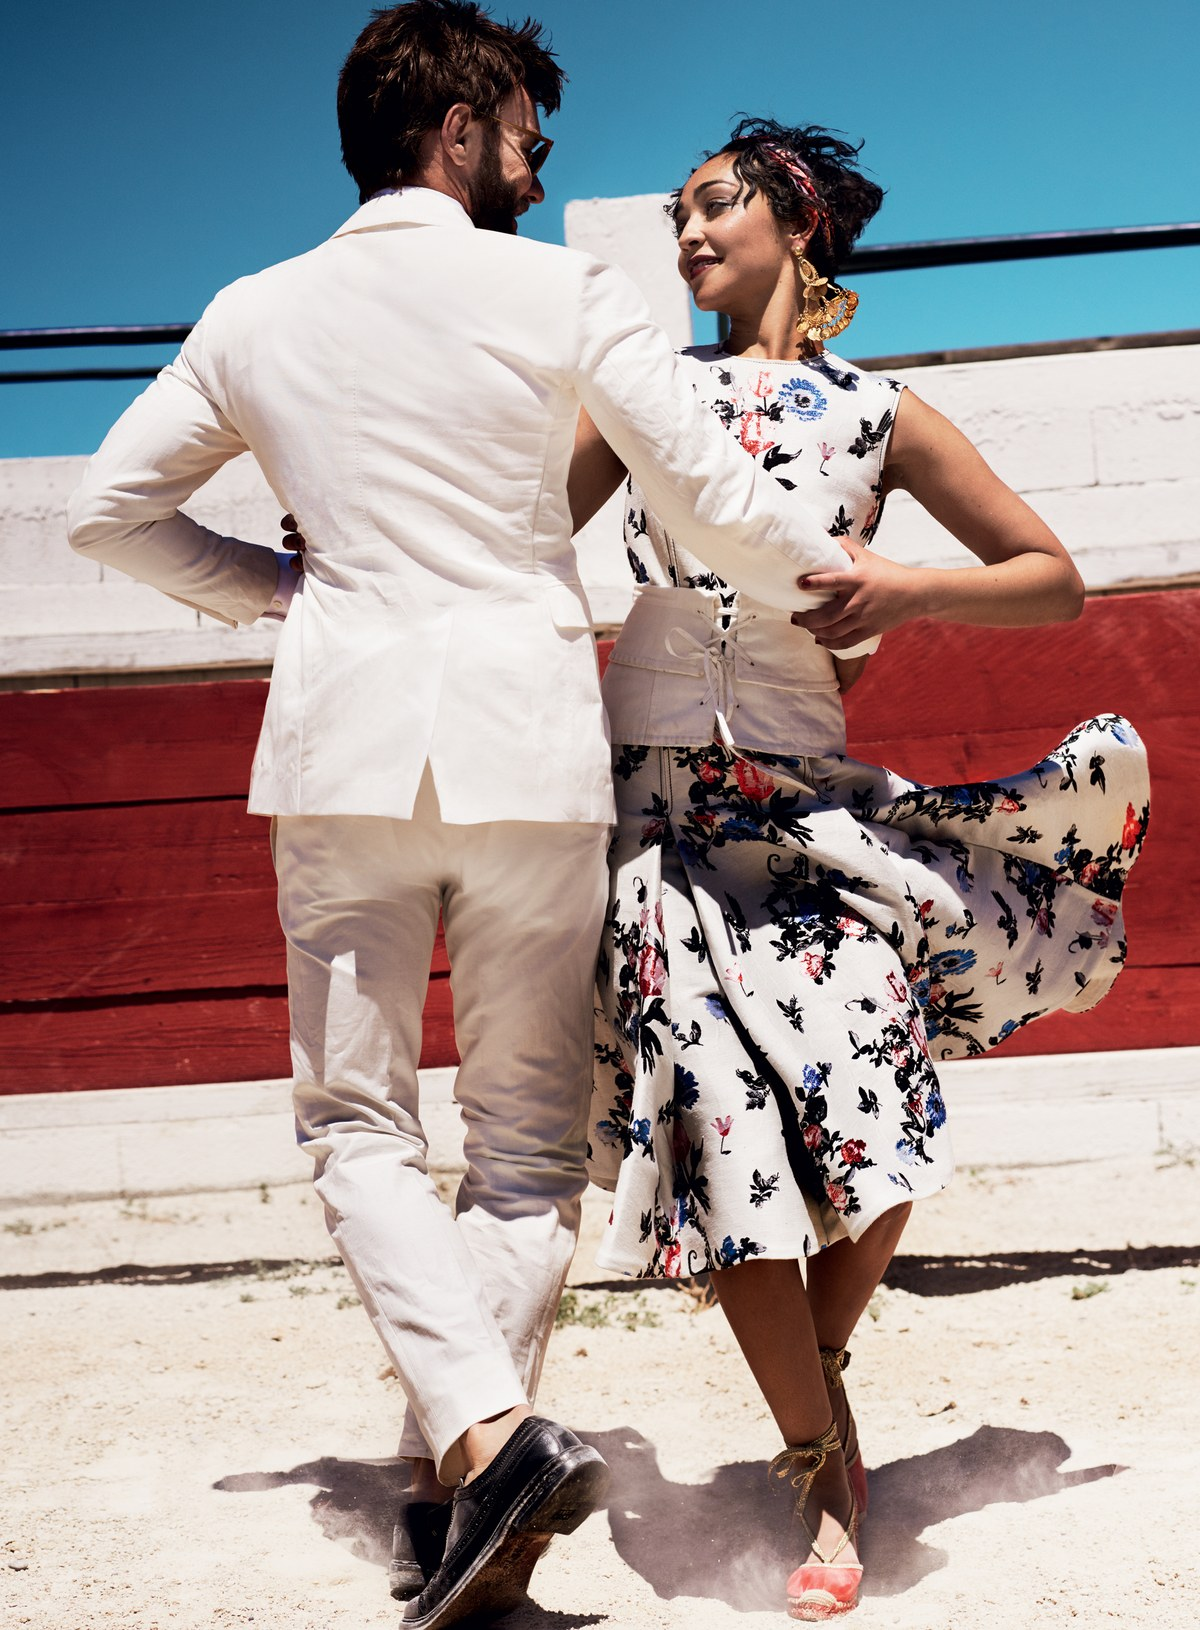 INSPIRED STYLE FEATURING RUTH NEGGA, RUTH NEGGA, LOVING MOVIE, JOEL EDGERTON 8